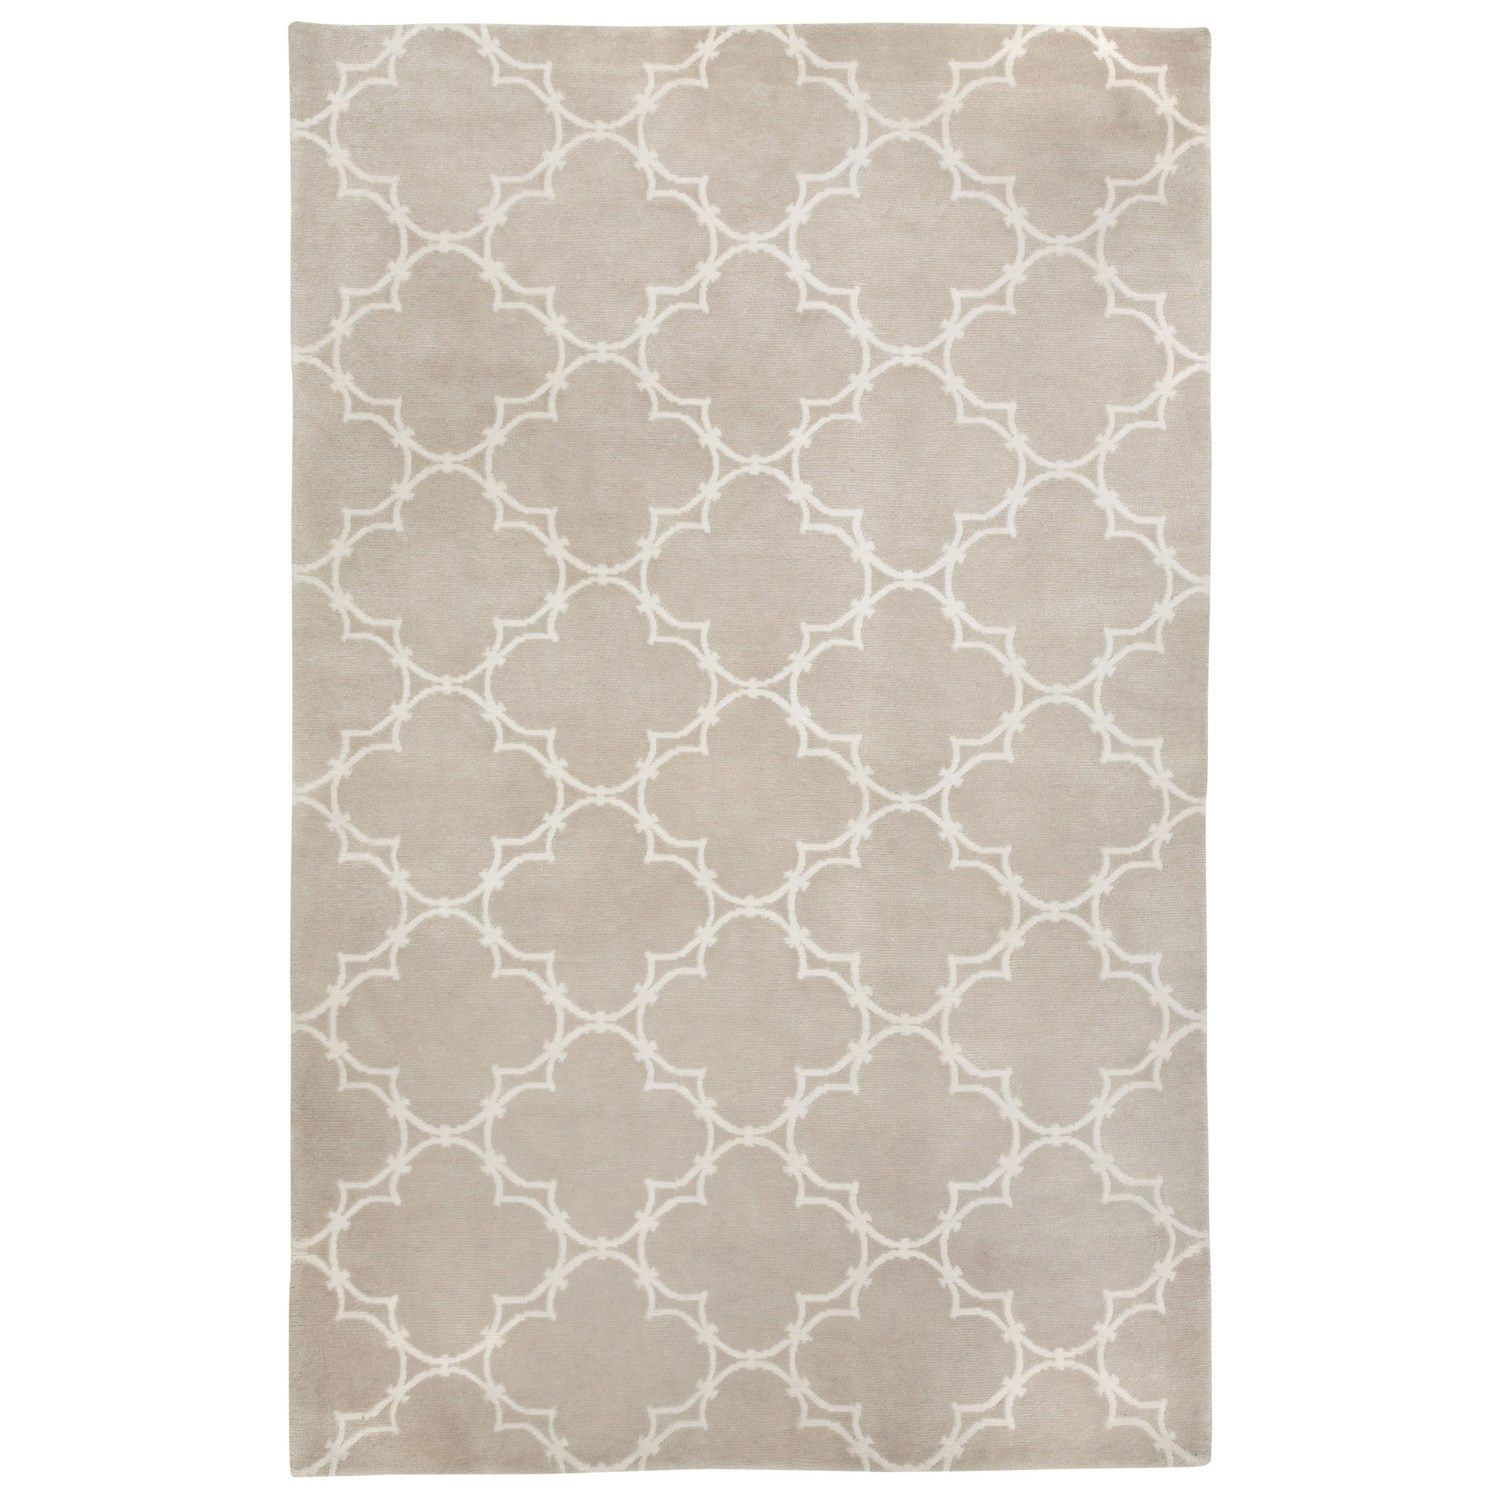 COCOCOZY Yale Champagne Hand Knotted Wool Rug via Layla Grayce